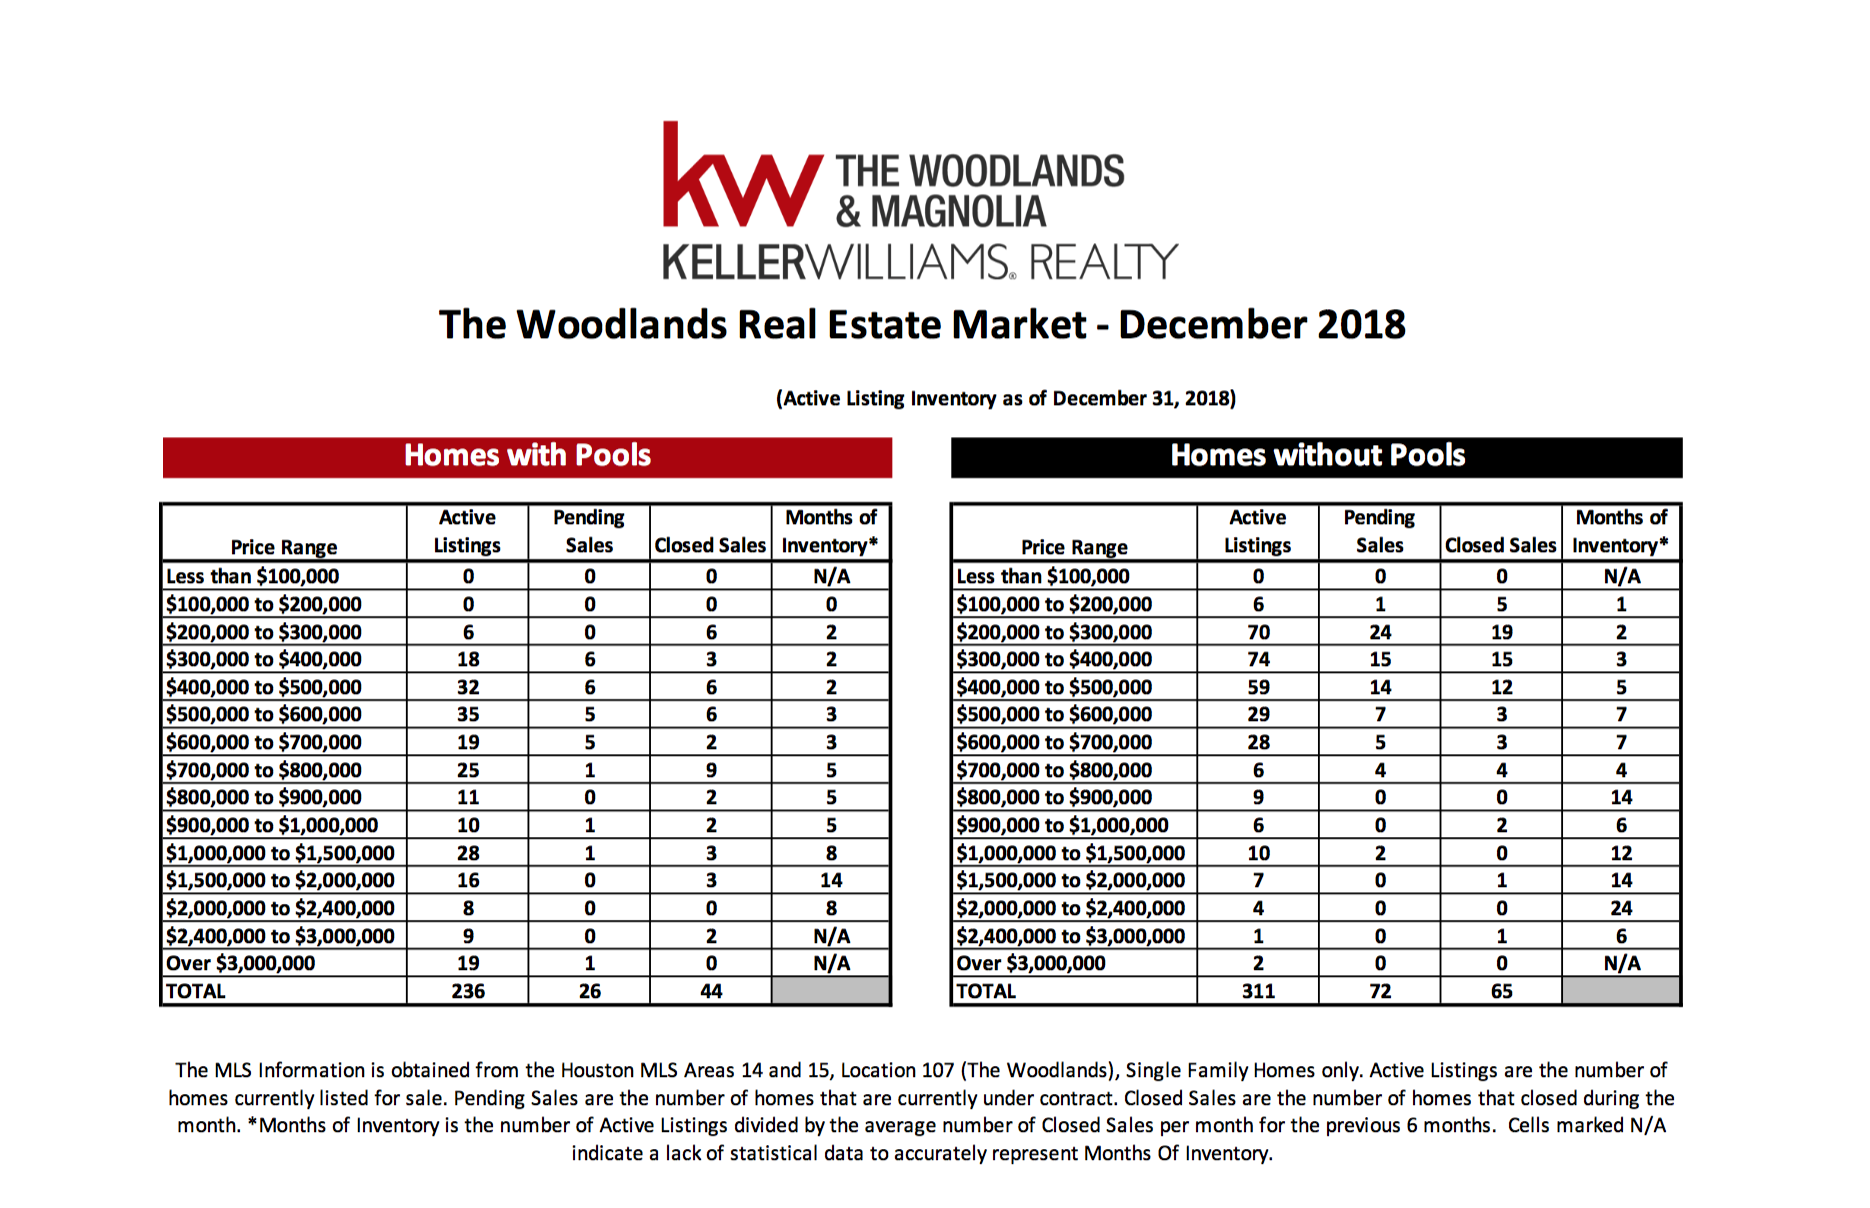 , December 2018 MarketWatch Report – The Woodlands, KW Woodlands